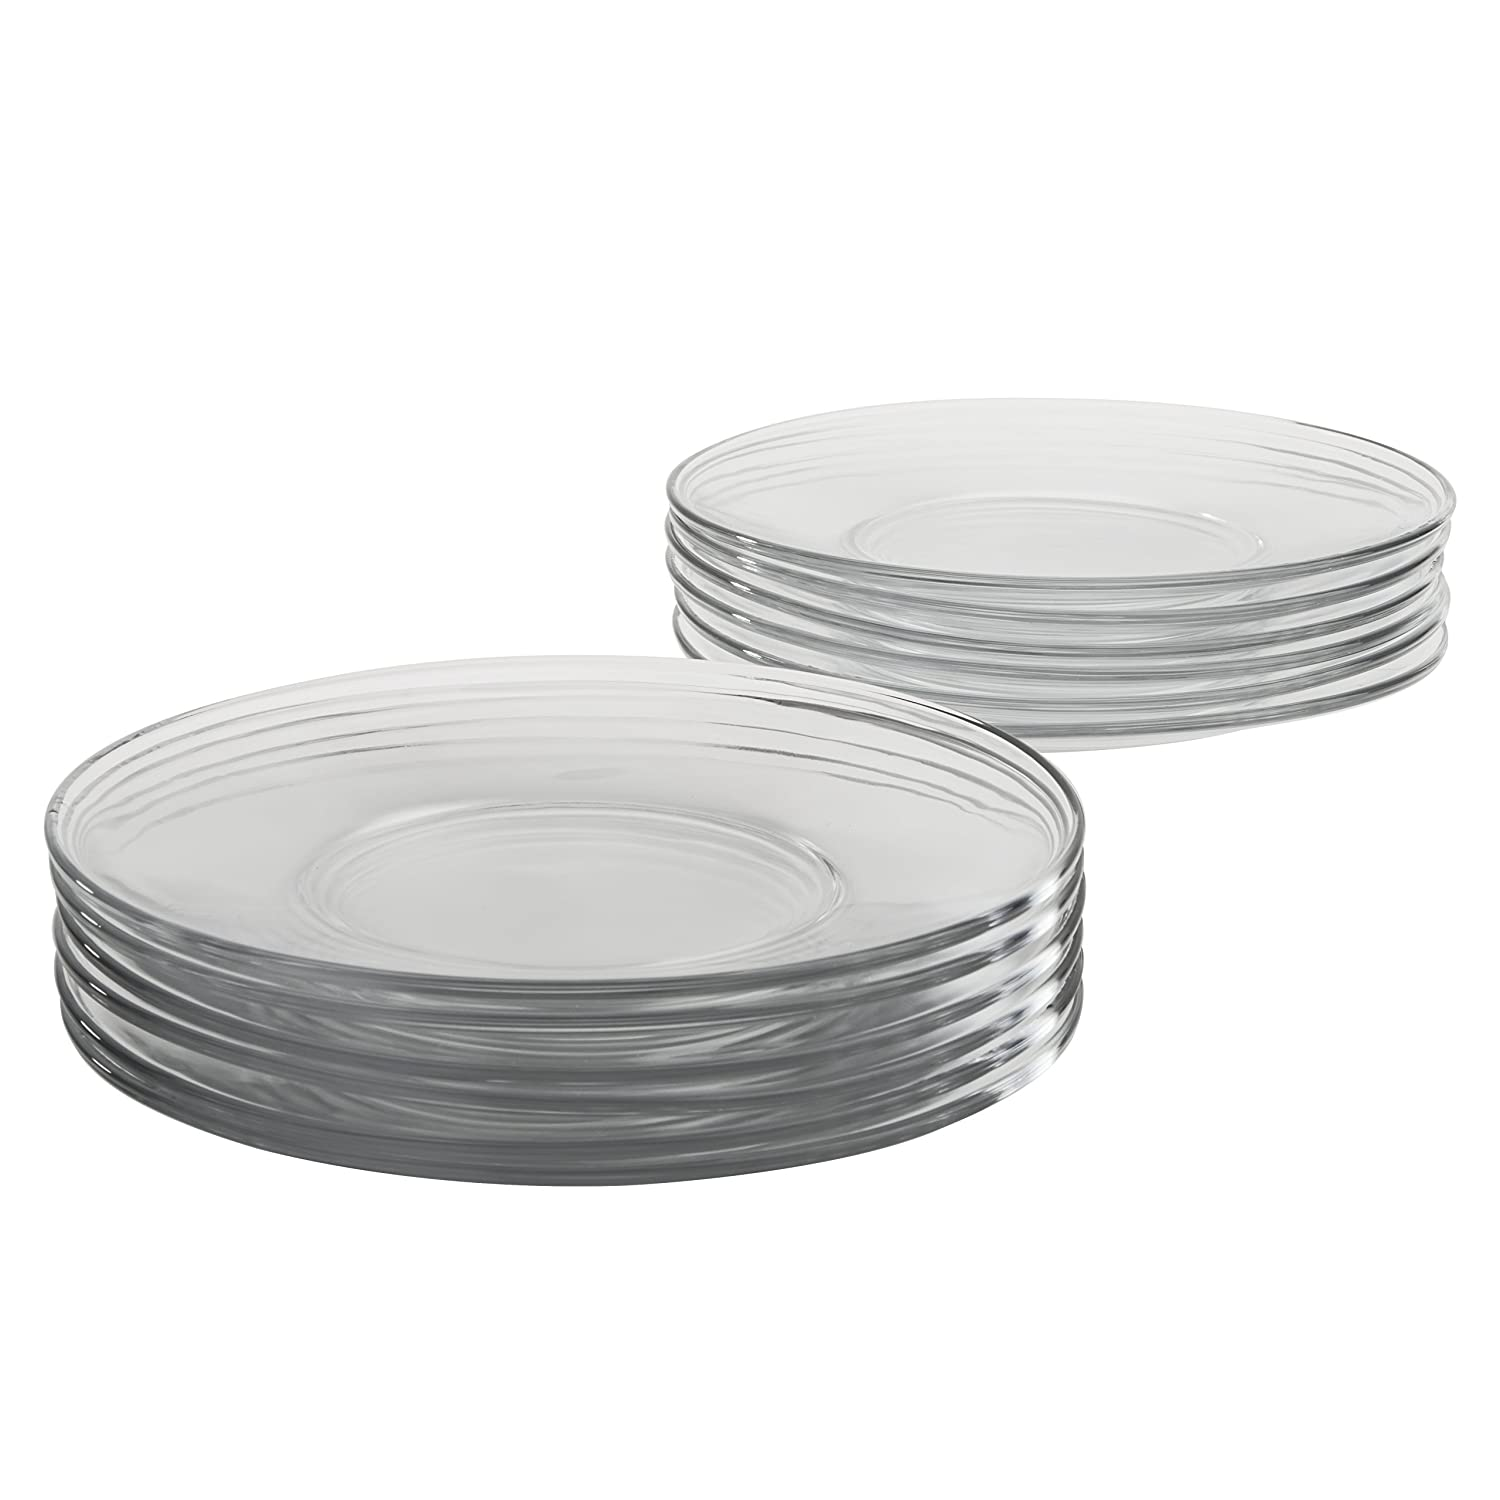 Anchor Hocking 8-Inch Presence Glass Salad Plate, Set of 12